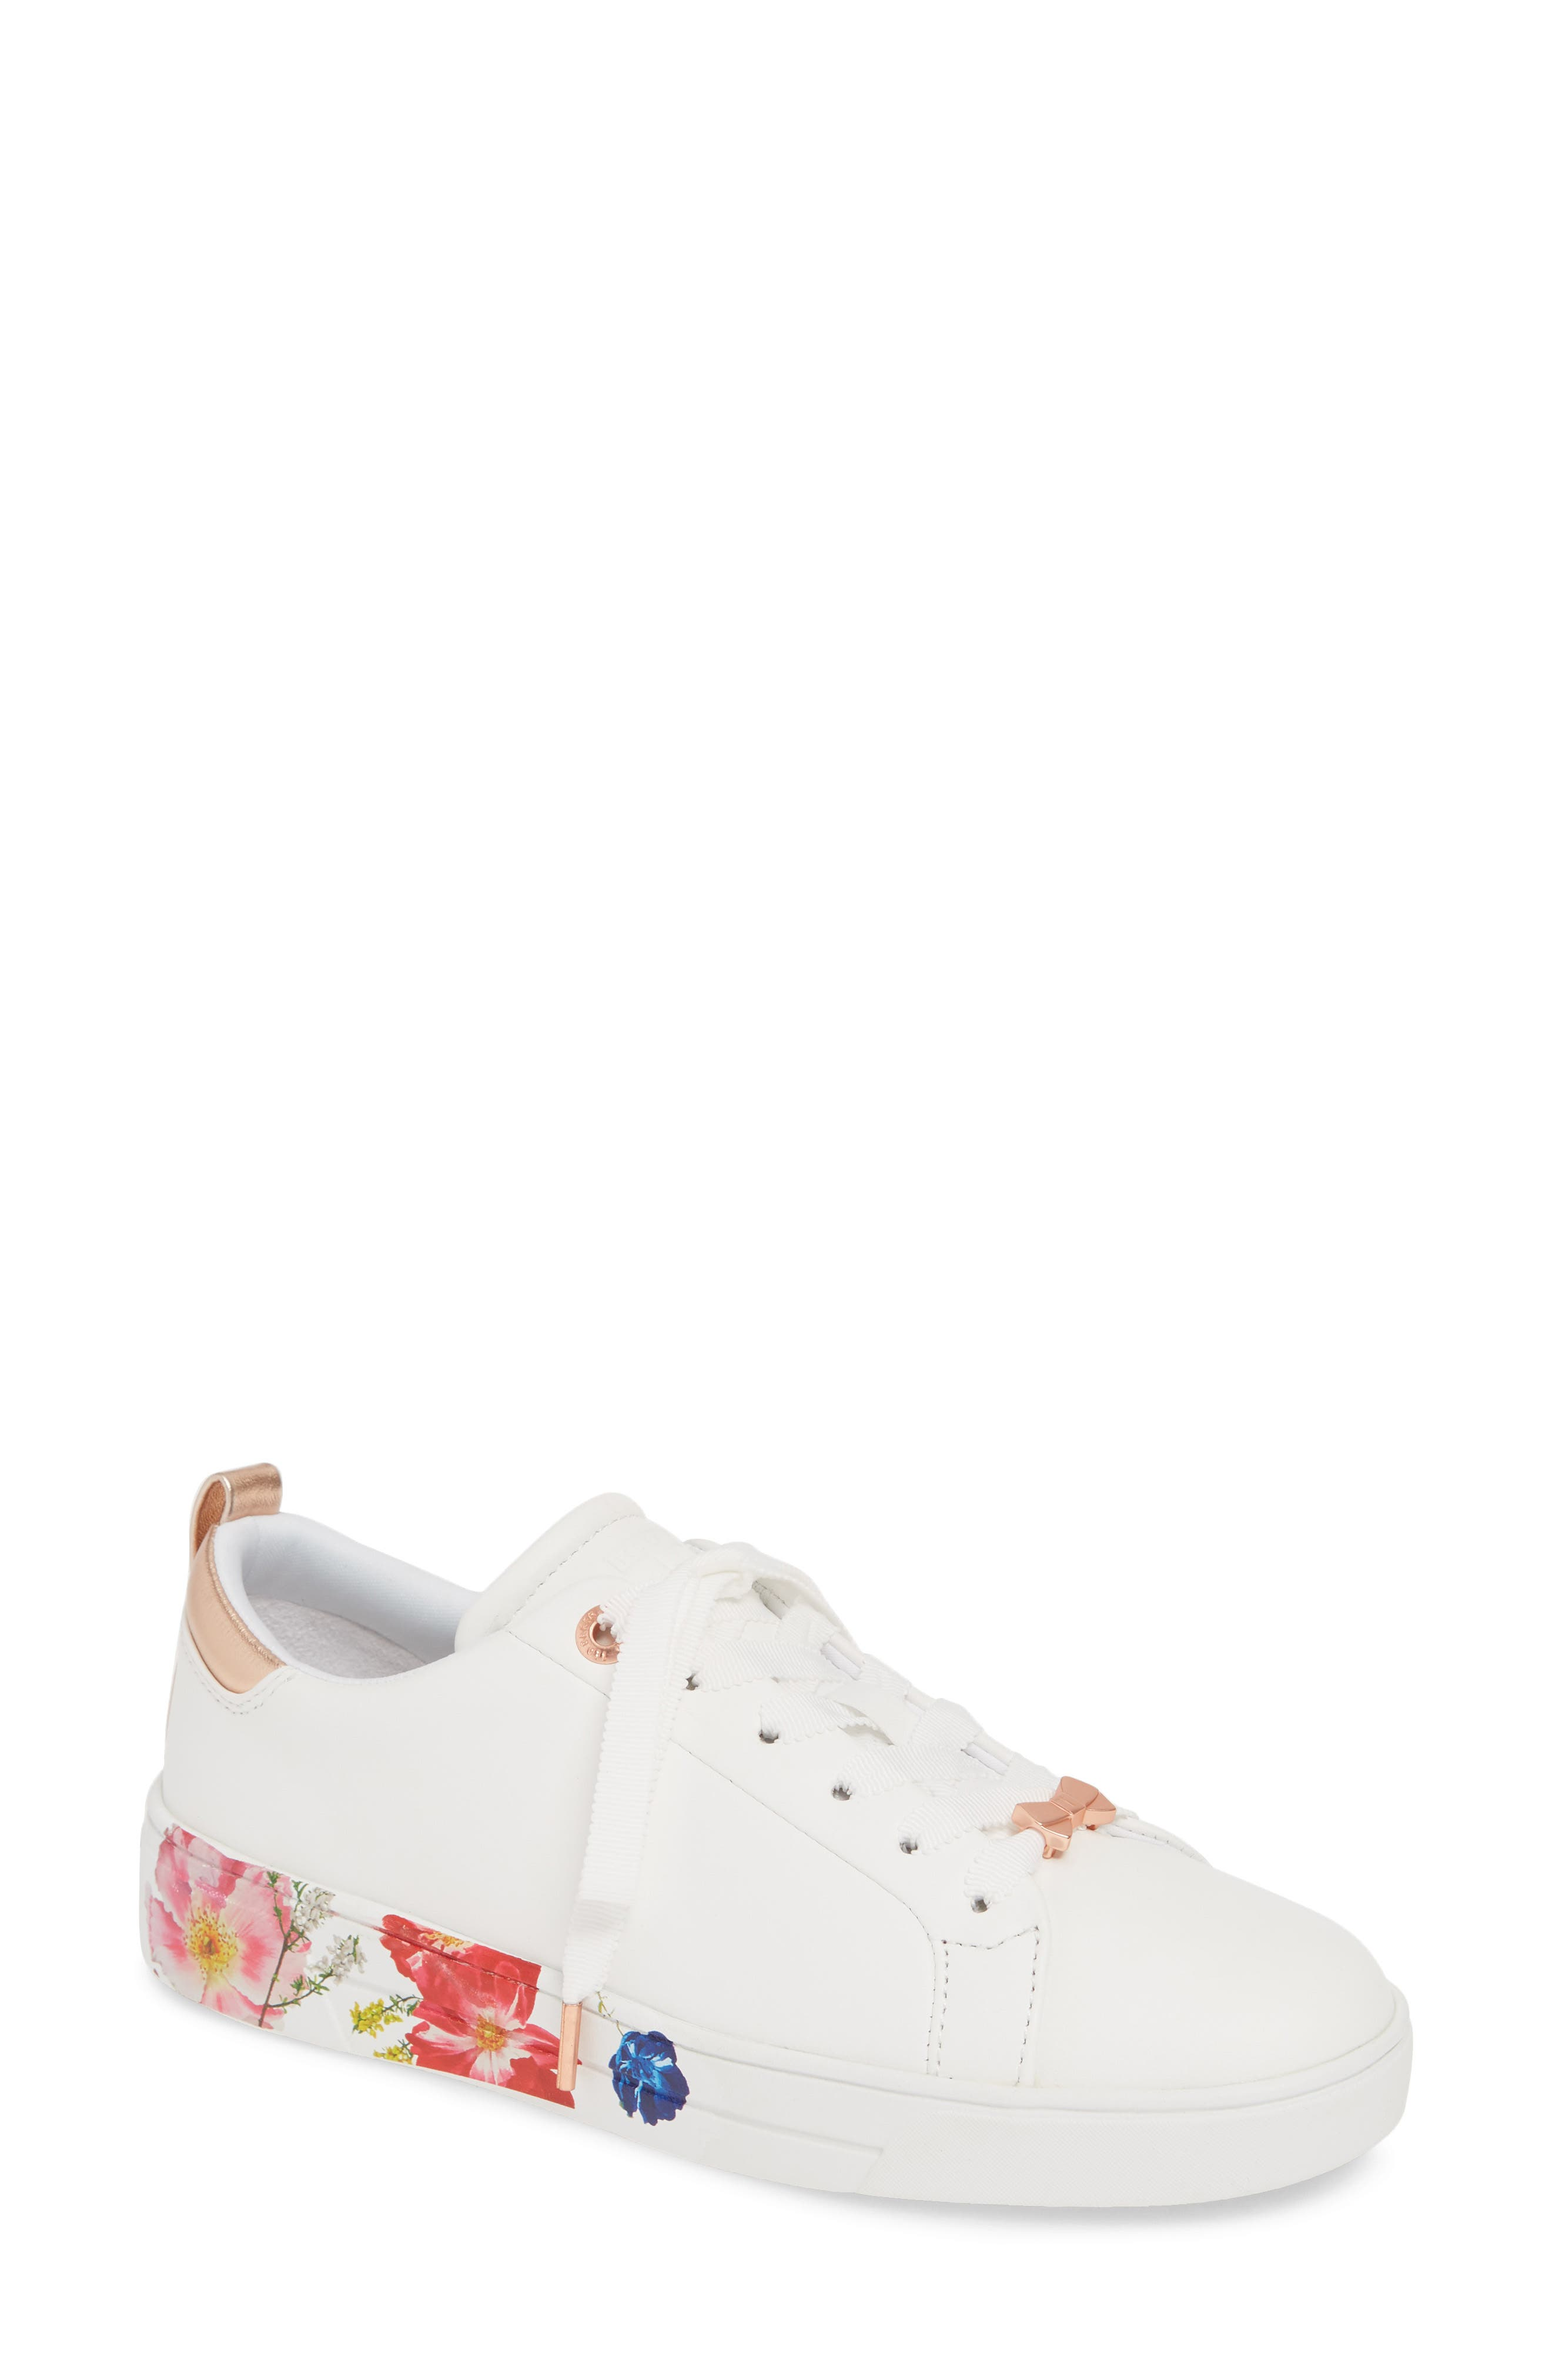 Ted Baker London Roully Sneaker - Red